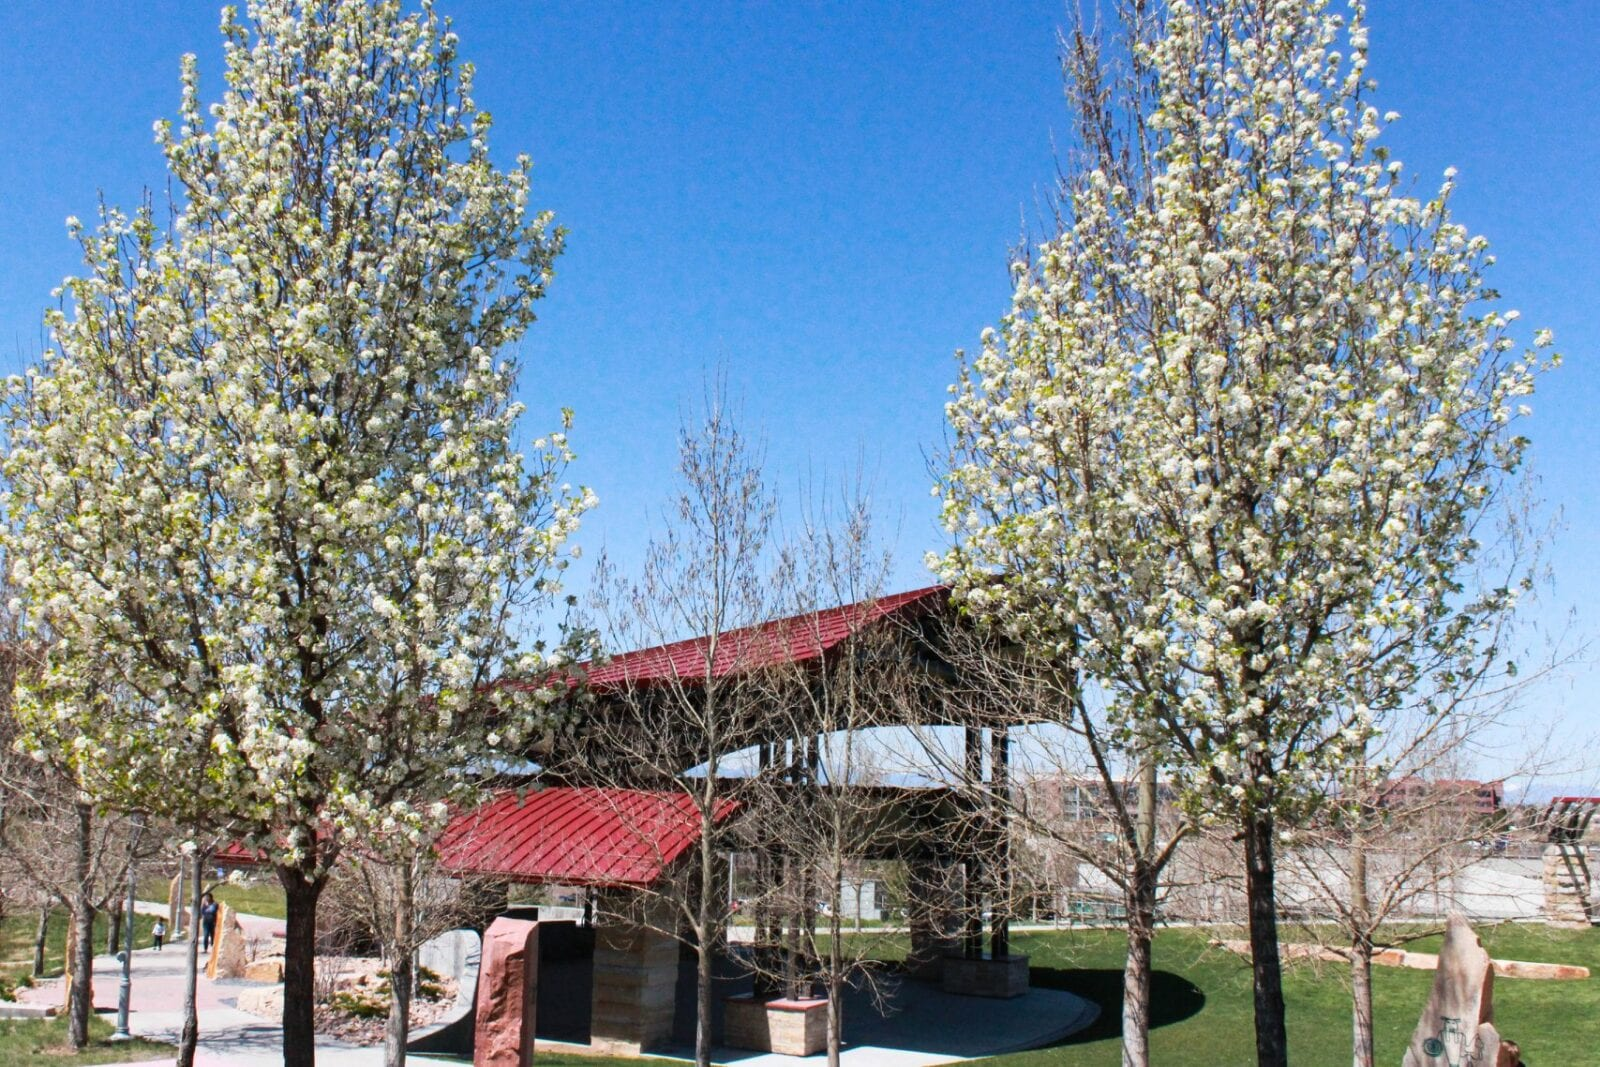 Image of a shelter area in the Centennial Center Park in Colorado